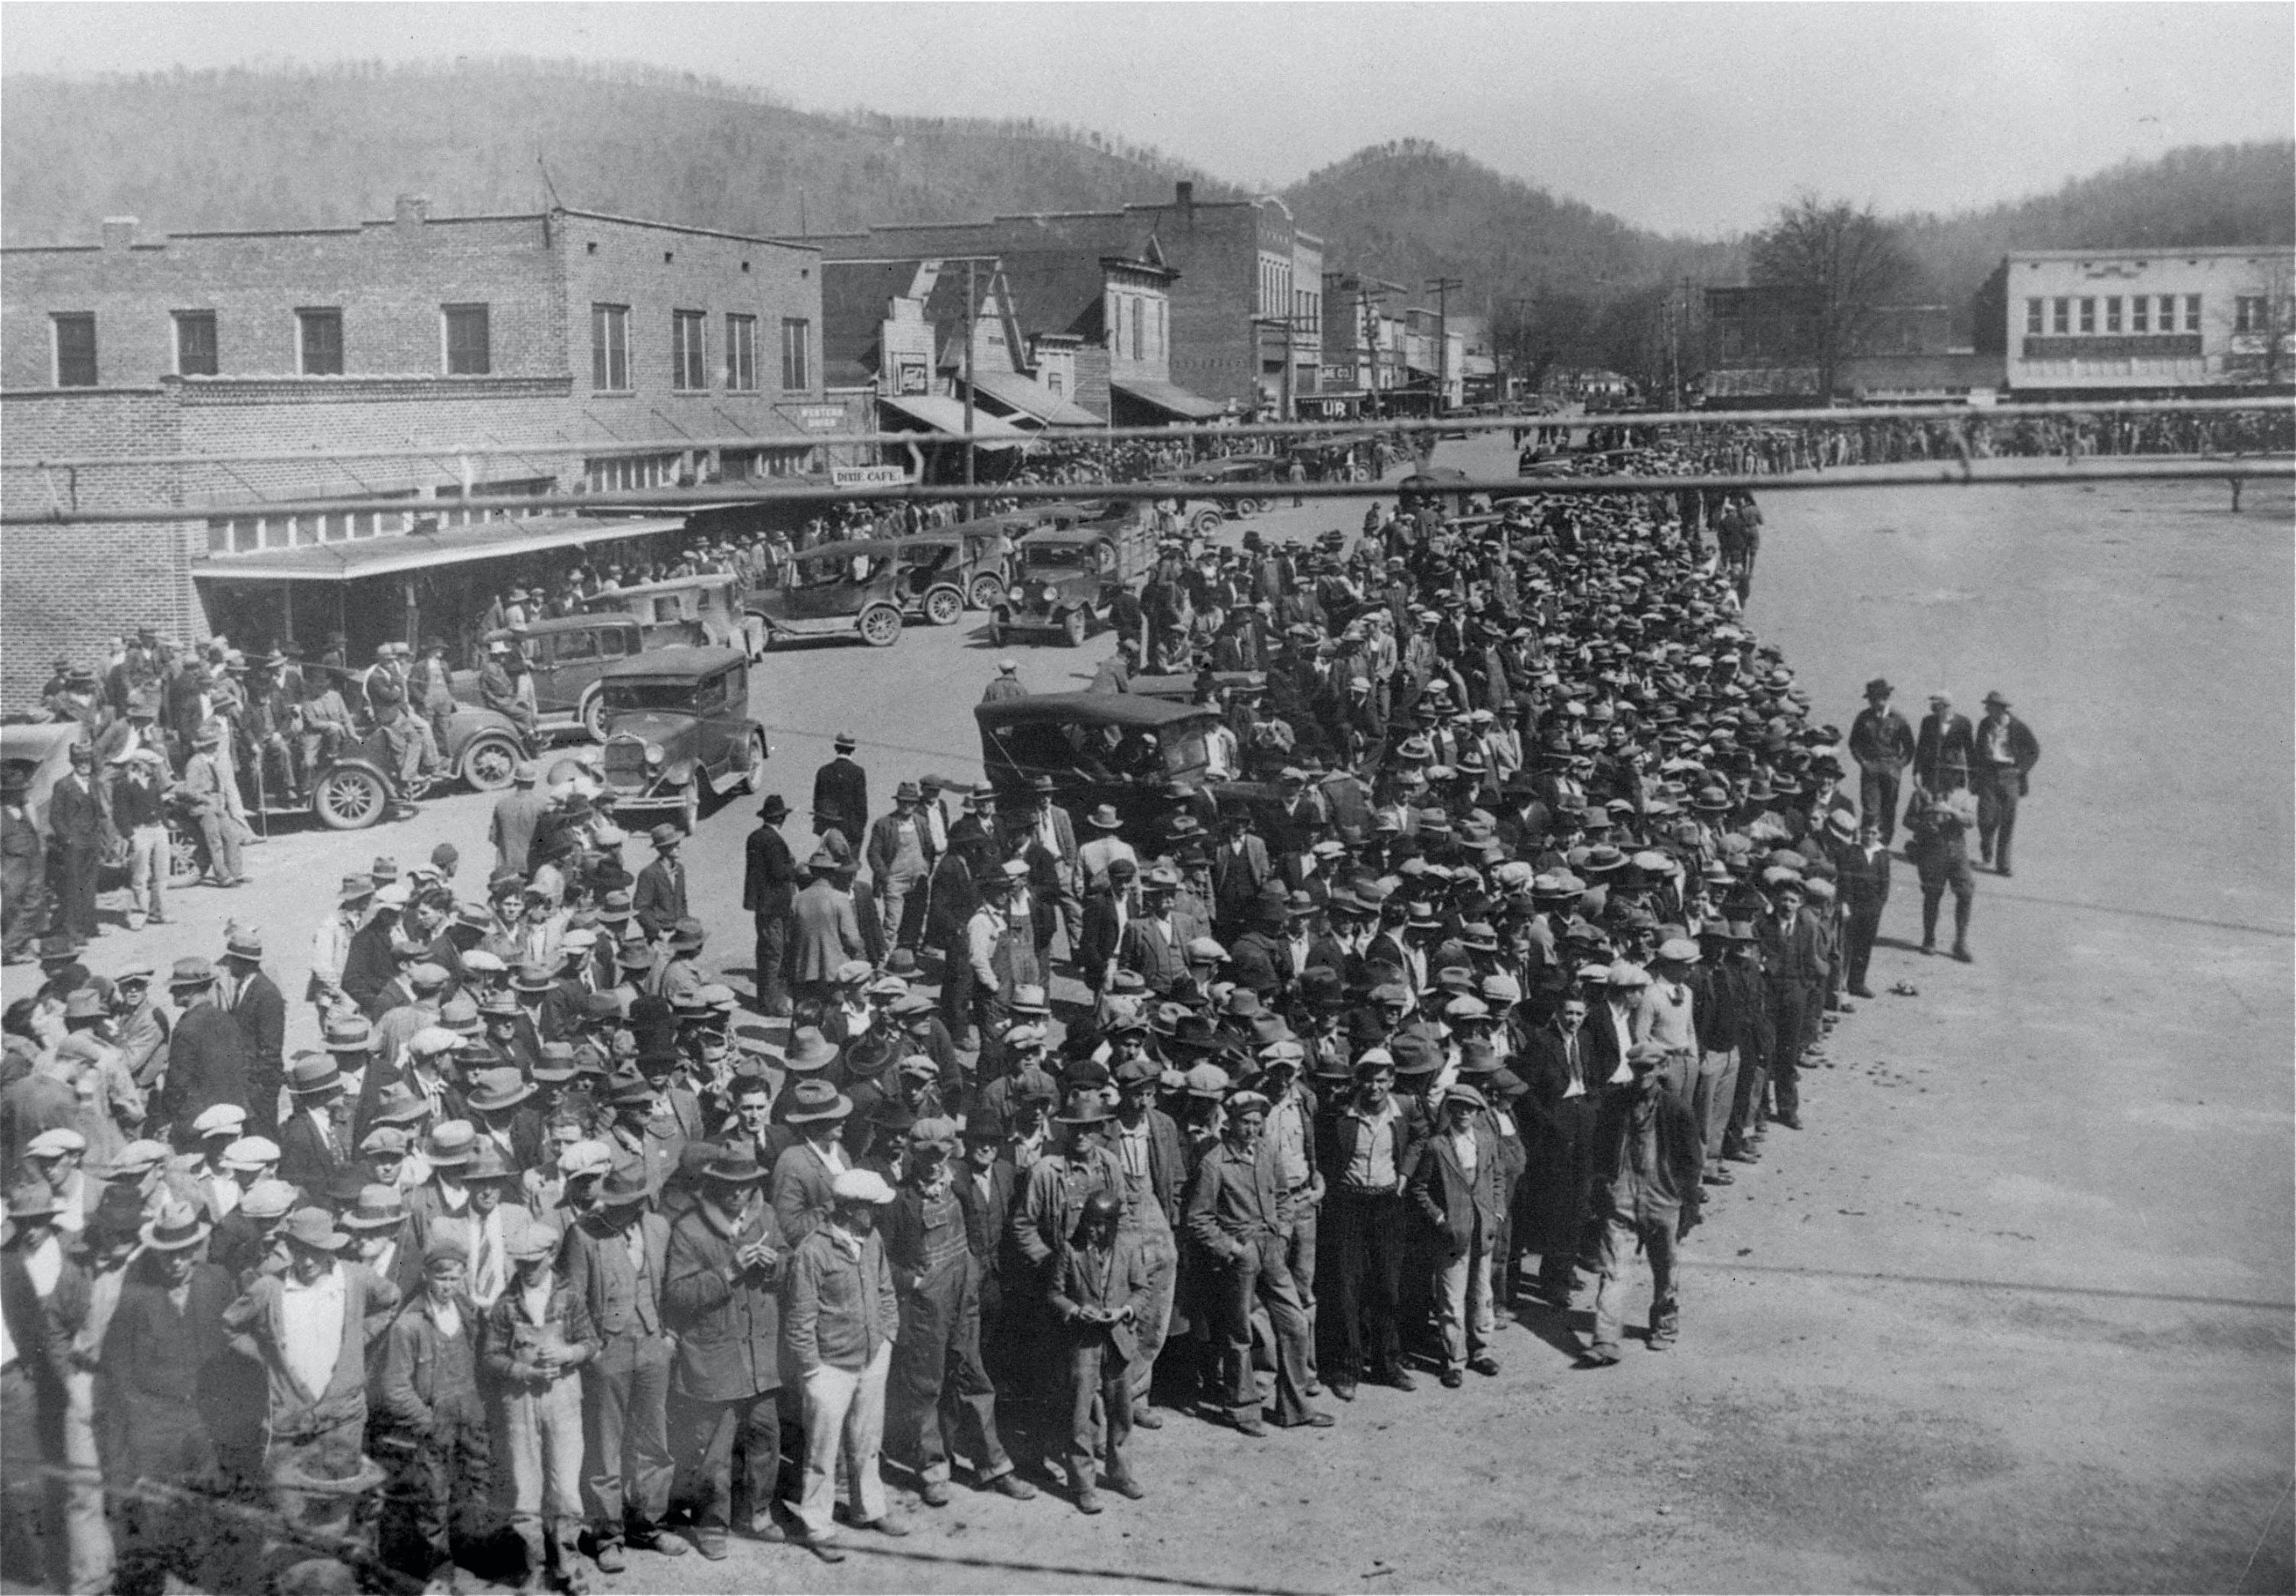 Here is shown a part of the crowd of 10,000 persons who jammed the courthouse square in the little town of Scottsboro, Alabama, April 6, 1933, on the opening of the trials of nine black youths accused of attacking two white girls near Sevenson, Ala., March 24, 1931.  National Guardsmen with fixed bayonets patrolled the courthouse grounds, and women and minors were barred from the courtroom.  The state asked for the death penalty for the first two defendants to be placed on trial.  The other seven will be tried later.  The nine were identified by the two girls as the ones who boarded the freight car in which they and seven white youths were riding, forced five of the white youths from the train, knocked the other two unconscious and attacked the girls. (AP Photo)